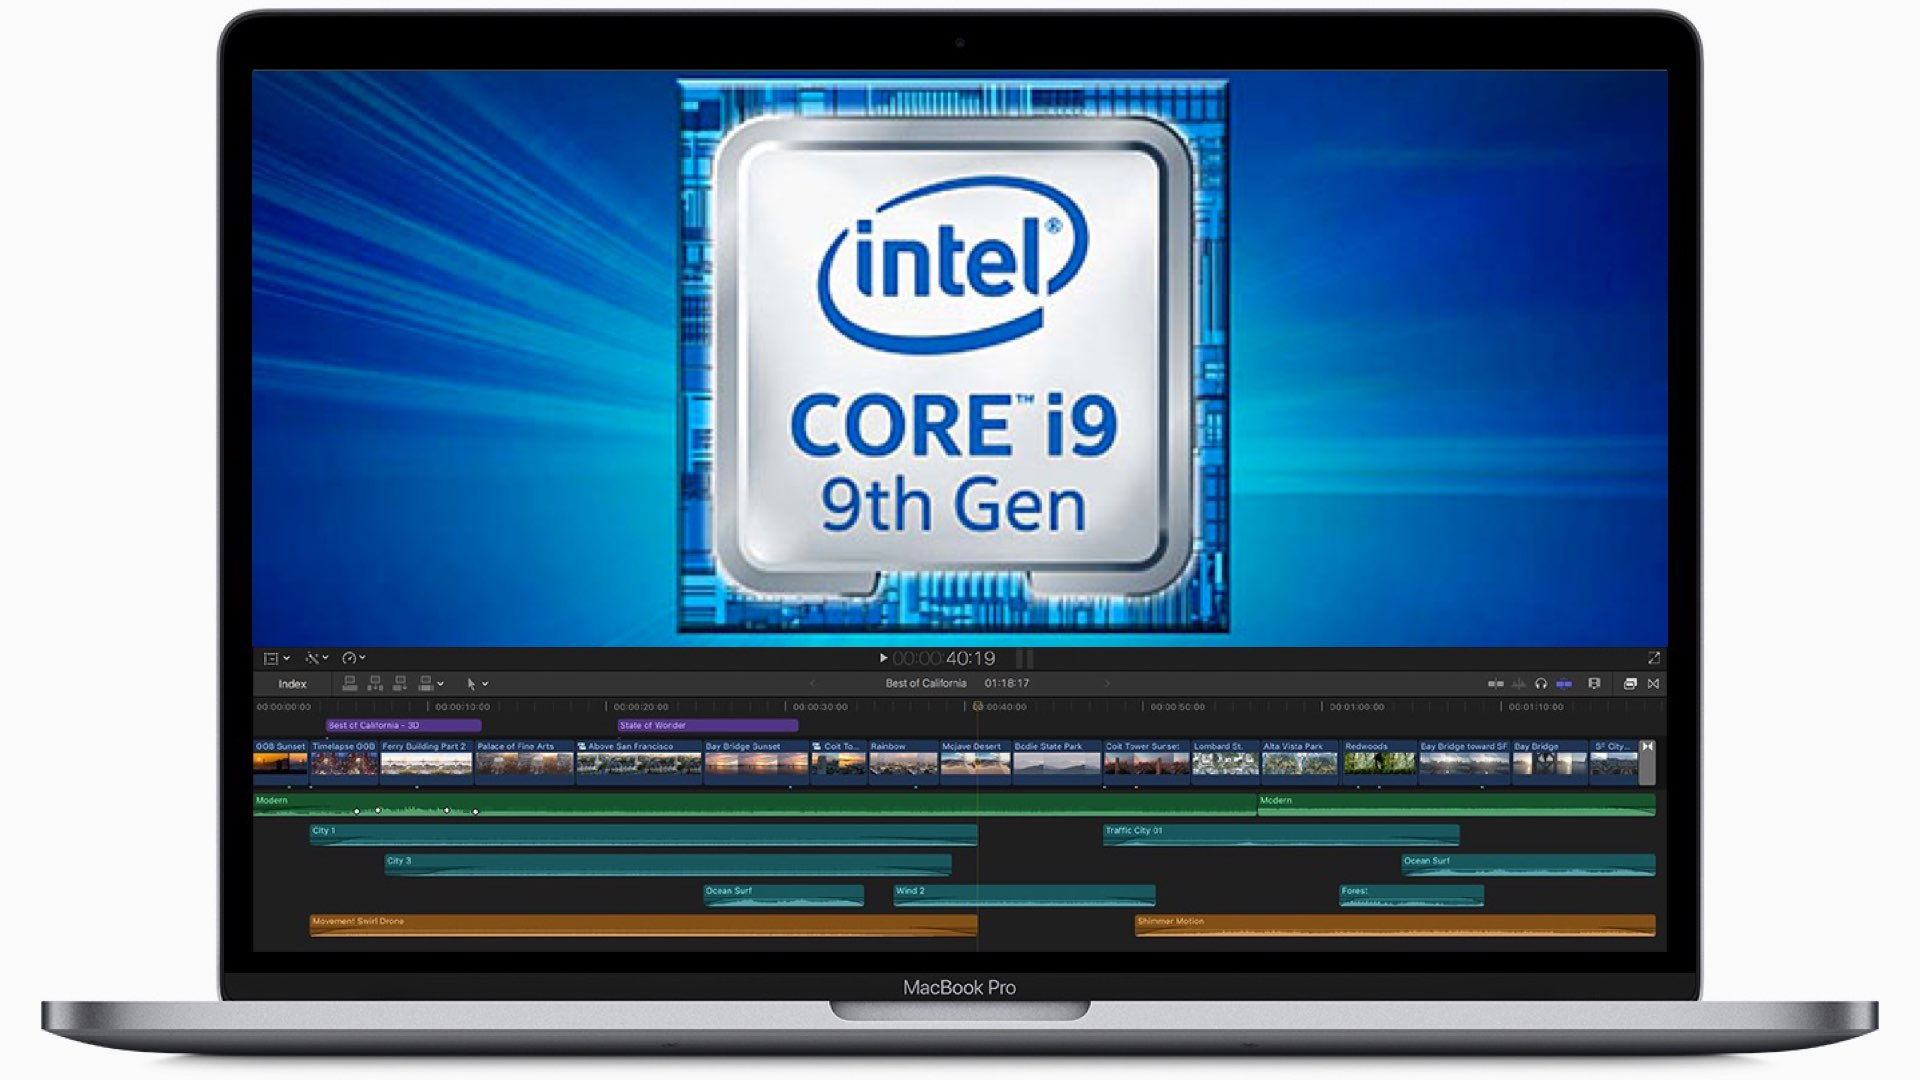 15 inch MacBook Pro 2019 comes with Intel Core i9